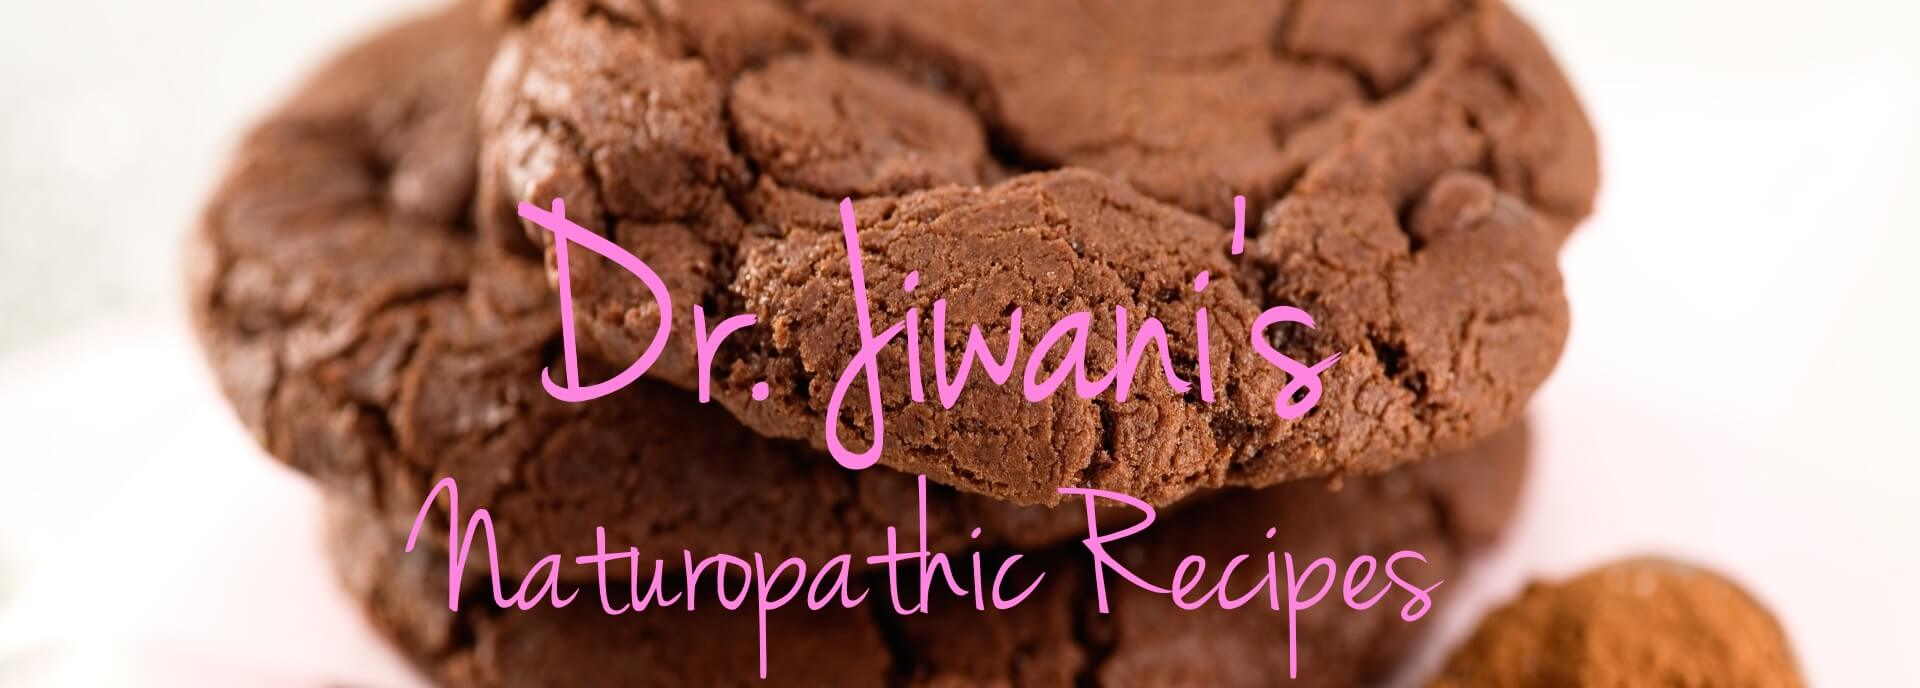 Dr. Jiwani's Naturopathic Recipe Blog